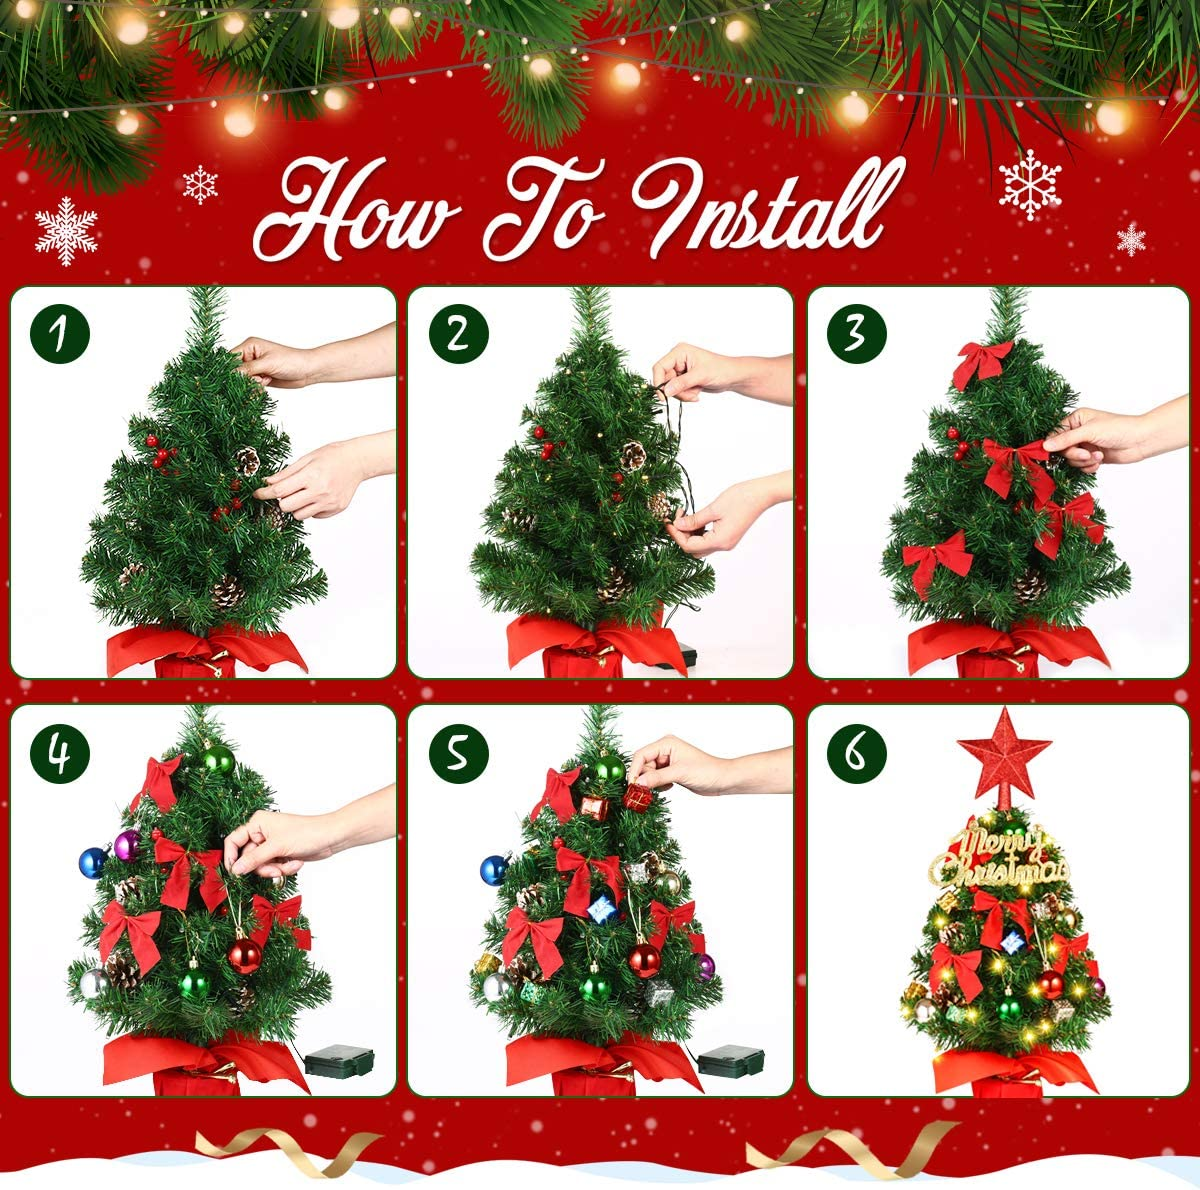 Tabletop Christmas Tree, Artificial Small Christmas Tree with 8 Lighting Modes Christmas Decorations Home Decor